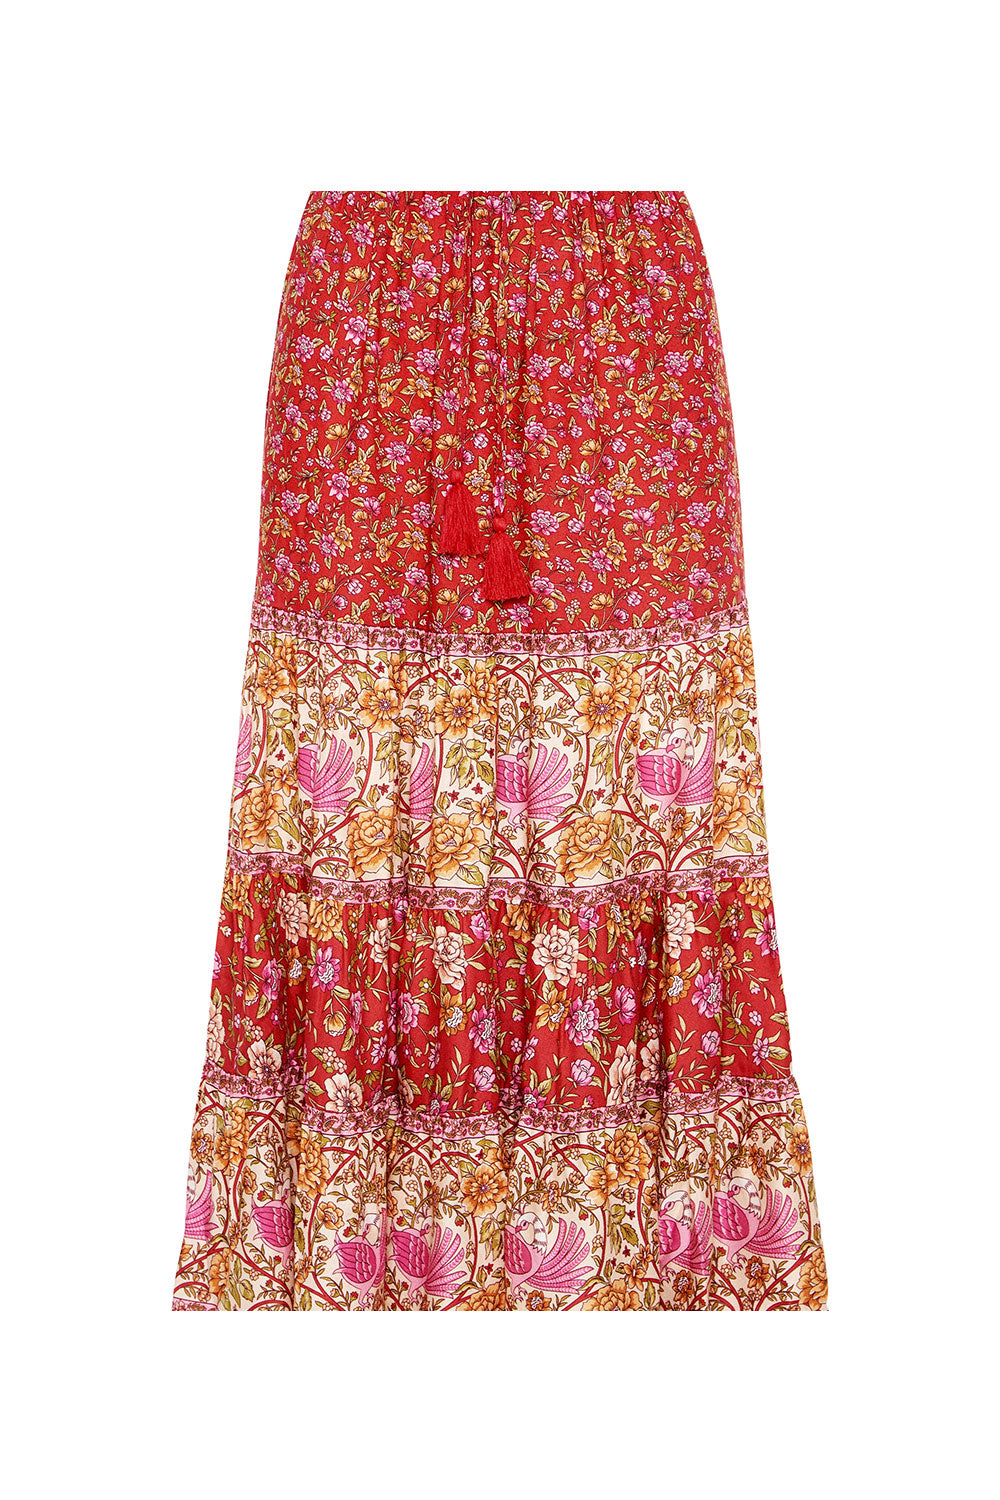 Jasmine Midi Skirt in Campari